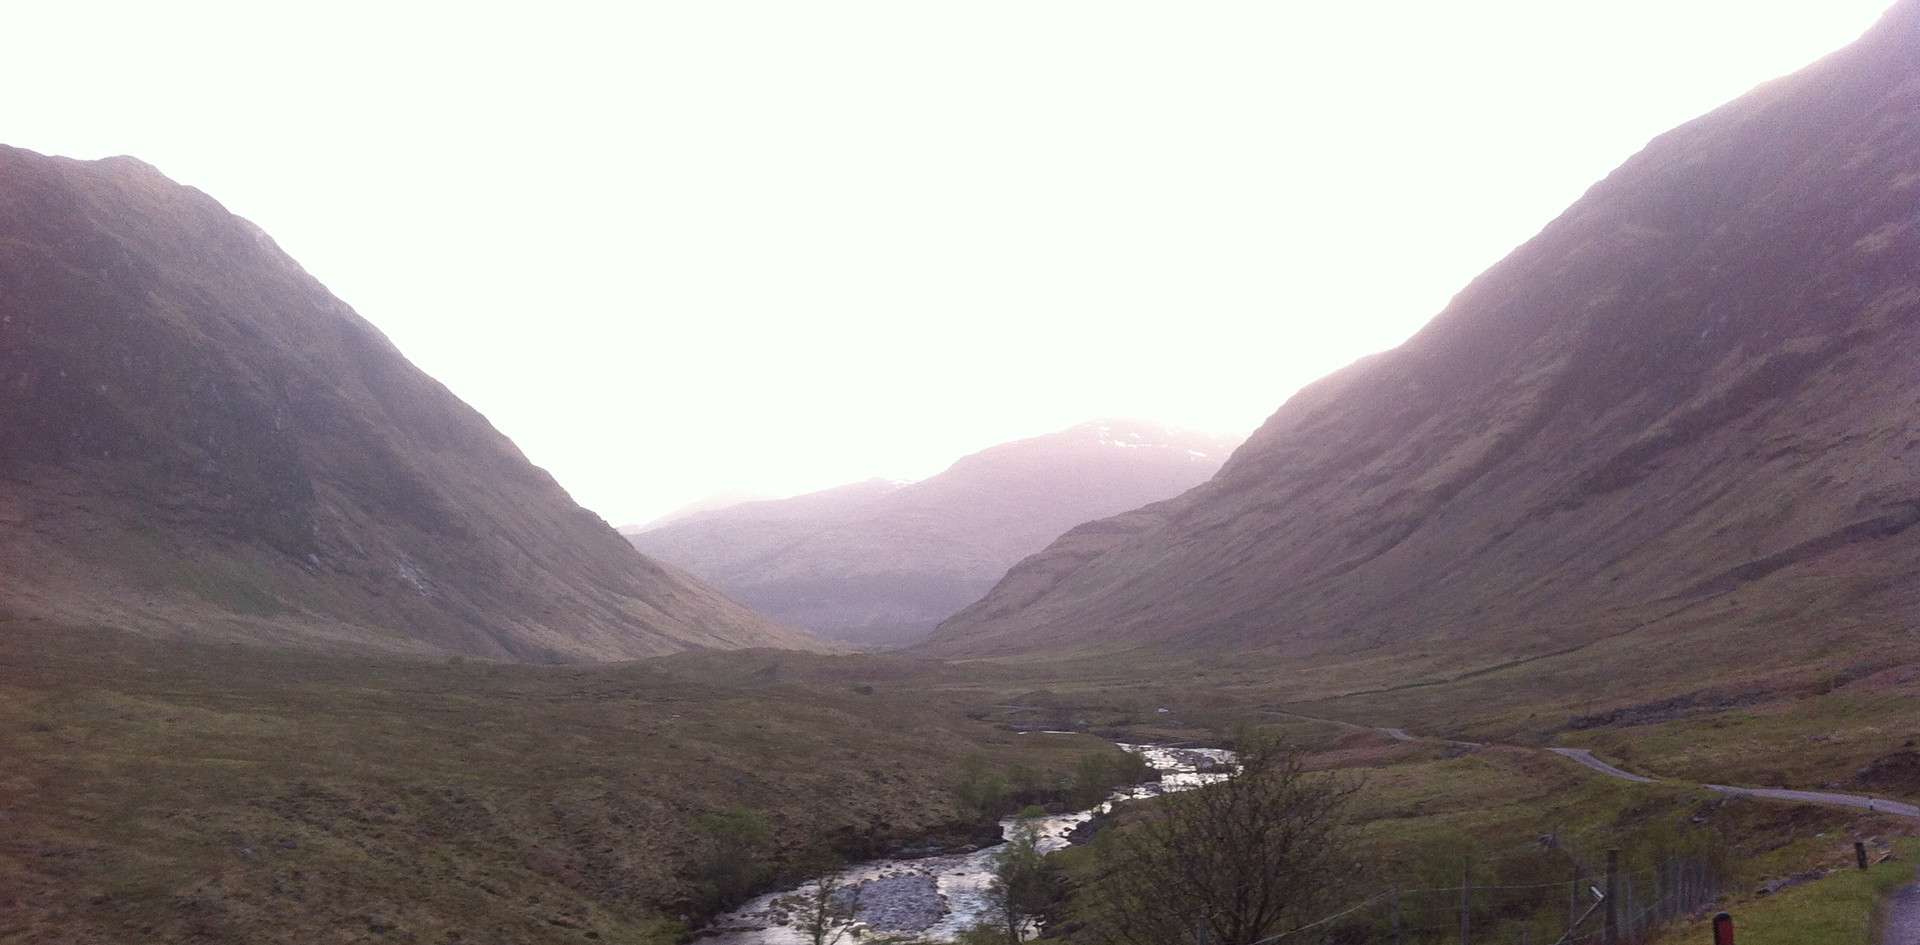 Skyfall country, near Glencoe